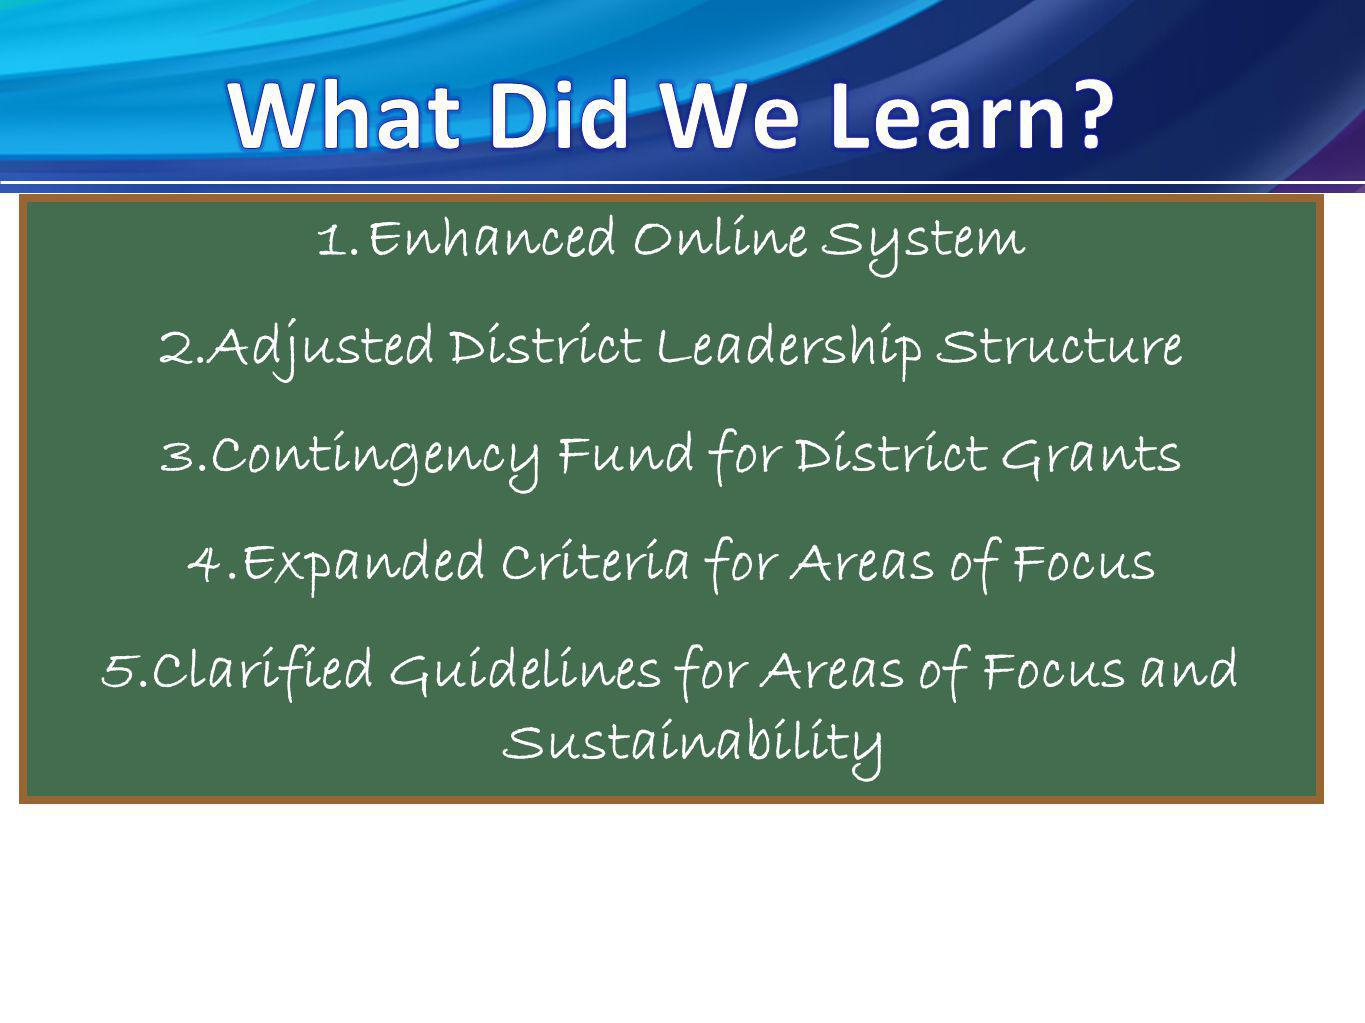 1.Enhanced Online System 2.Adjusted District Leadership Structure 3.Contingency Fund for District Grants 4.Expanded Criteria for Areas of Focus 5.Clarified Guidelines for Areas of Focus and Sustainability